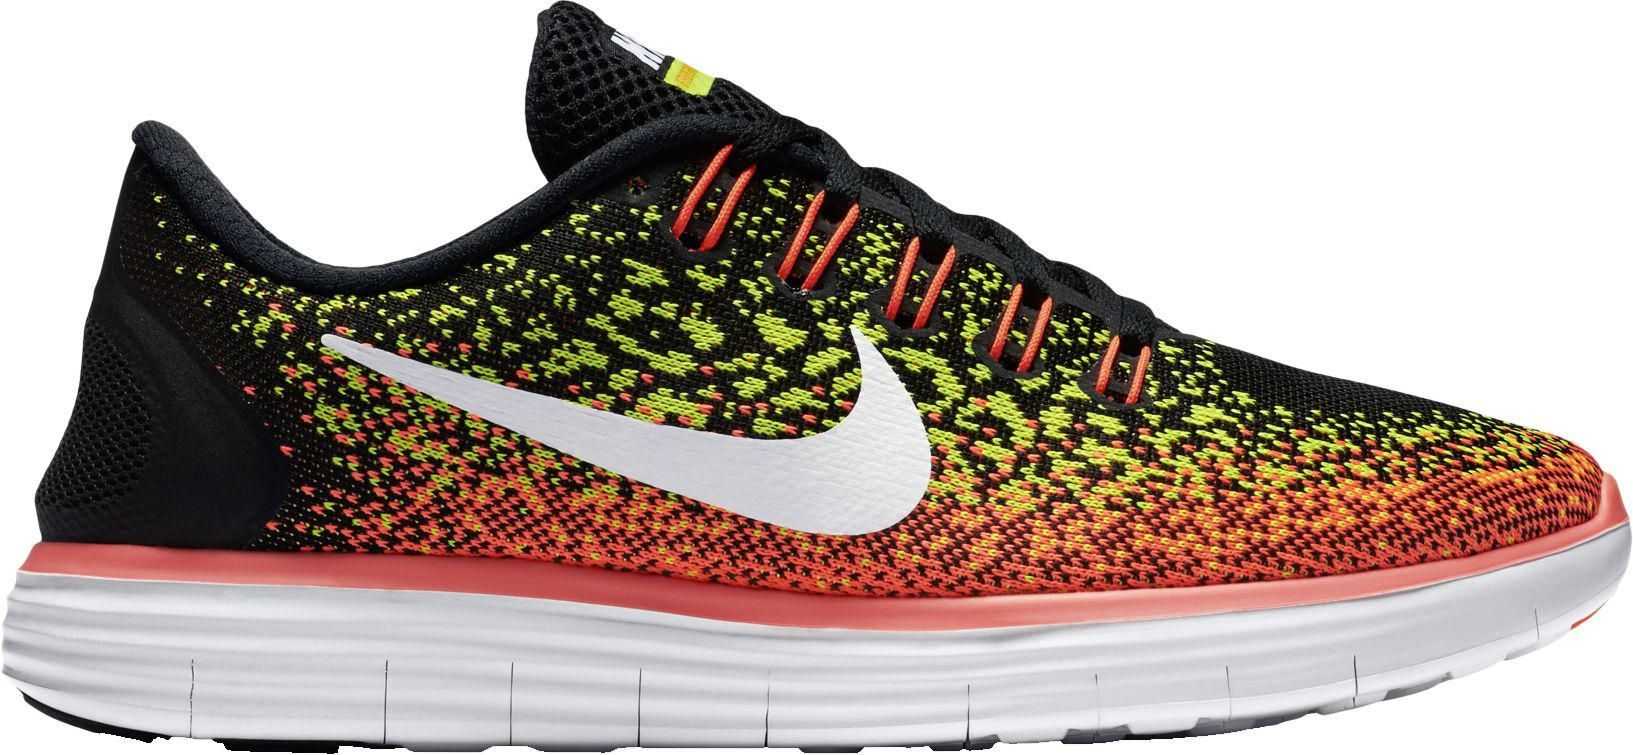 734e1d49d58 Lyst - Nike Free Distance Running Shoes in Black for Men